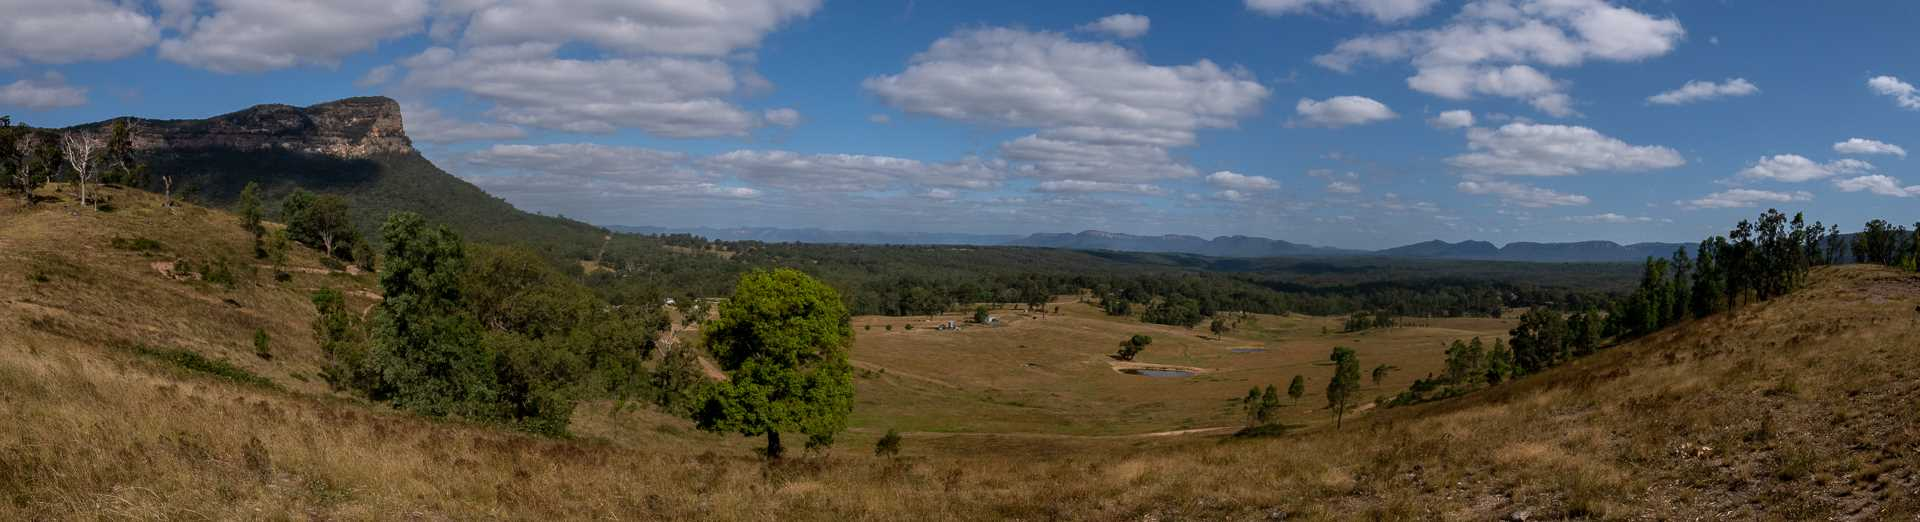 Panorama of the escarpment